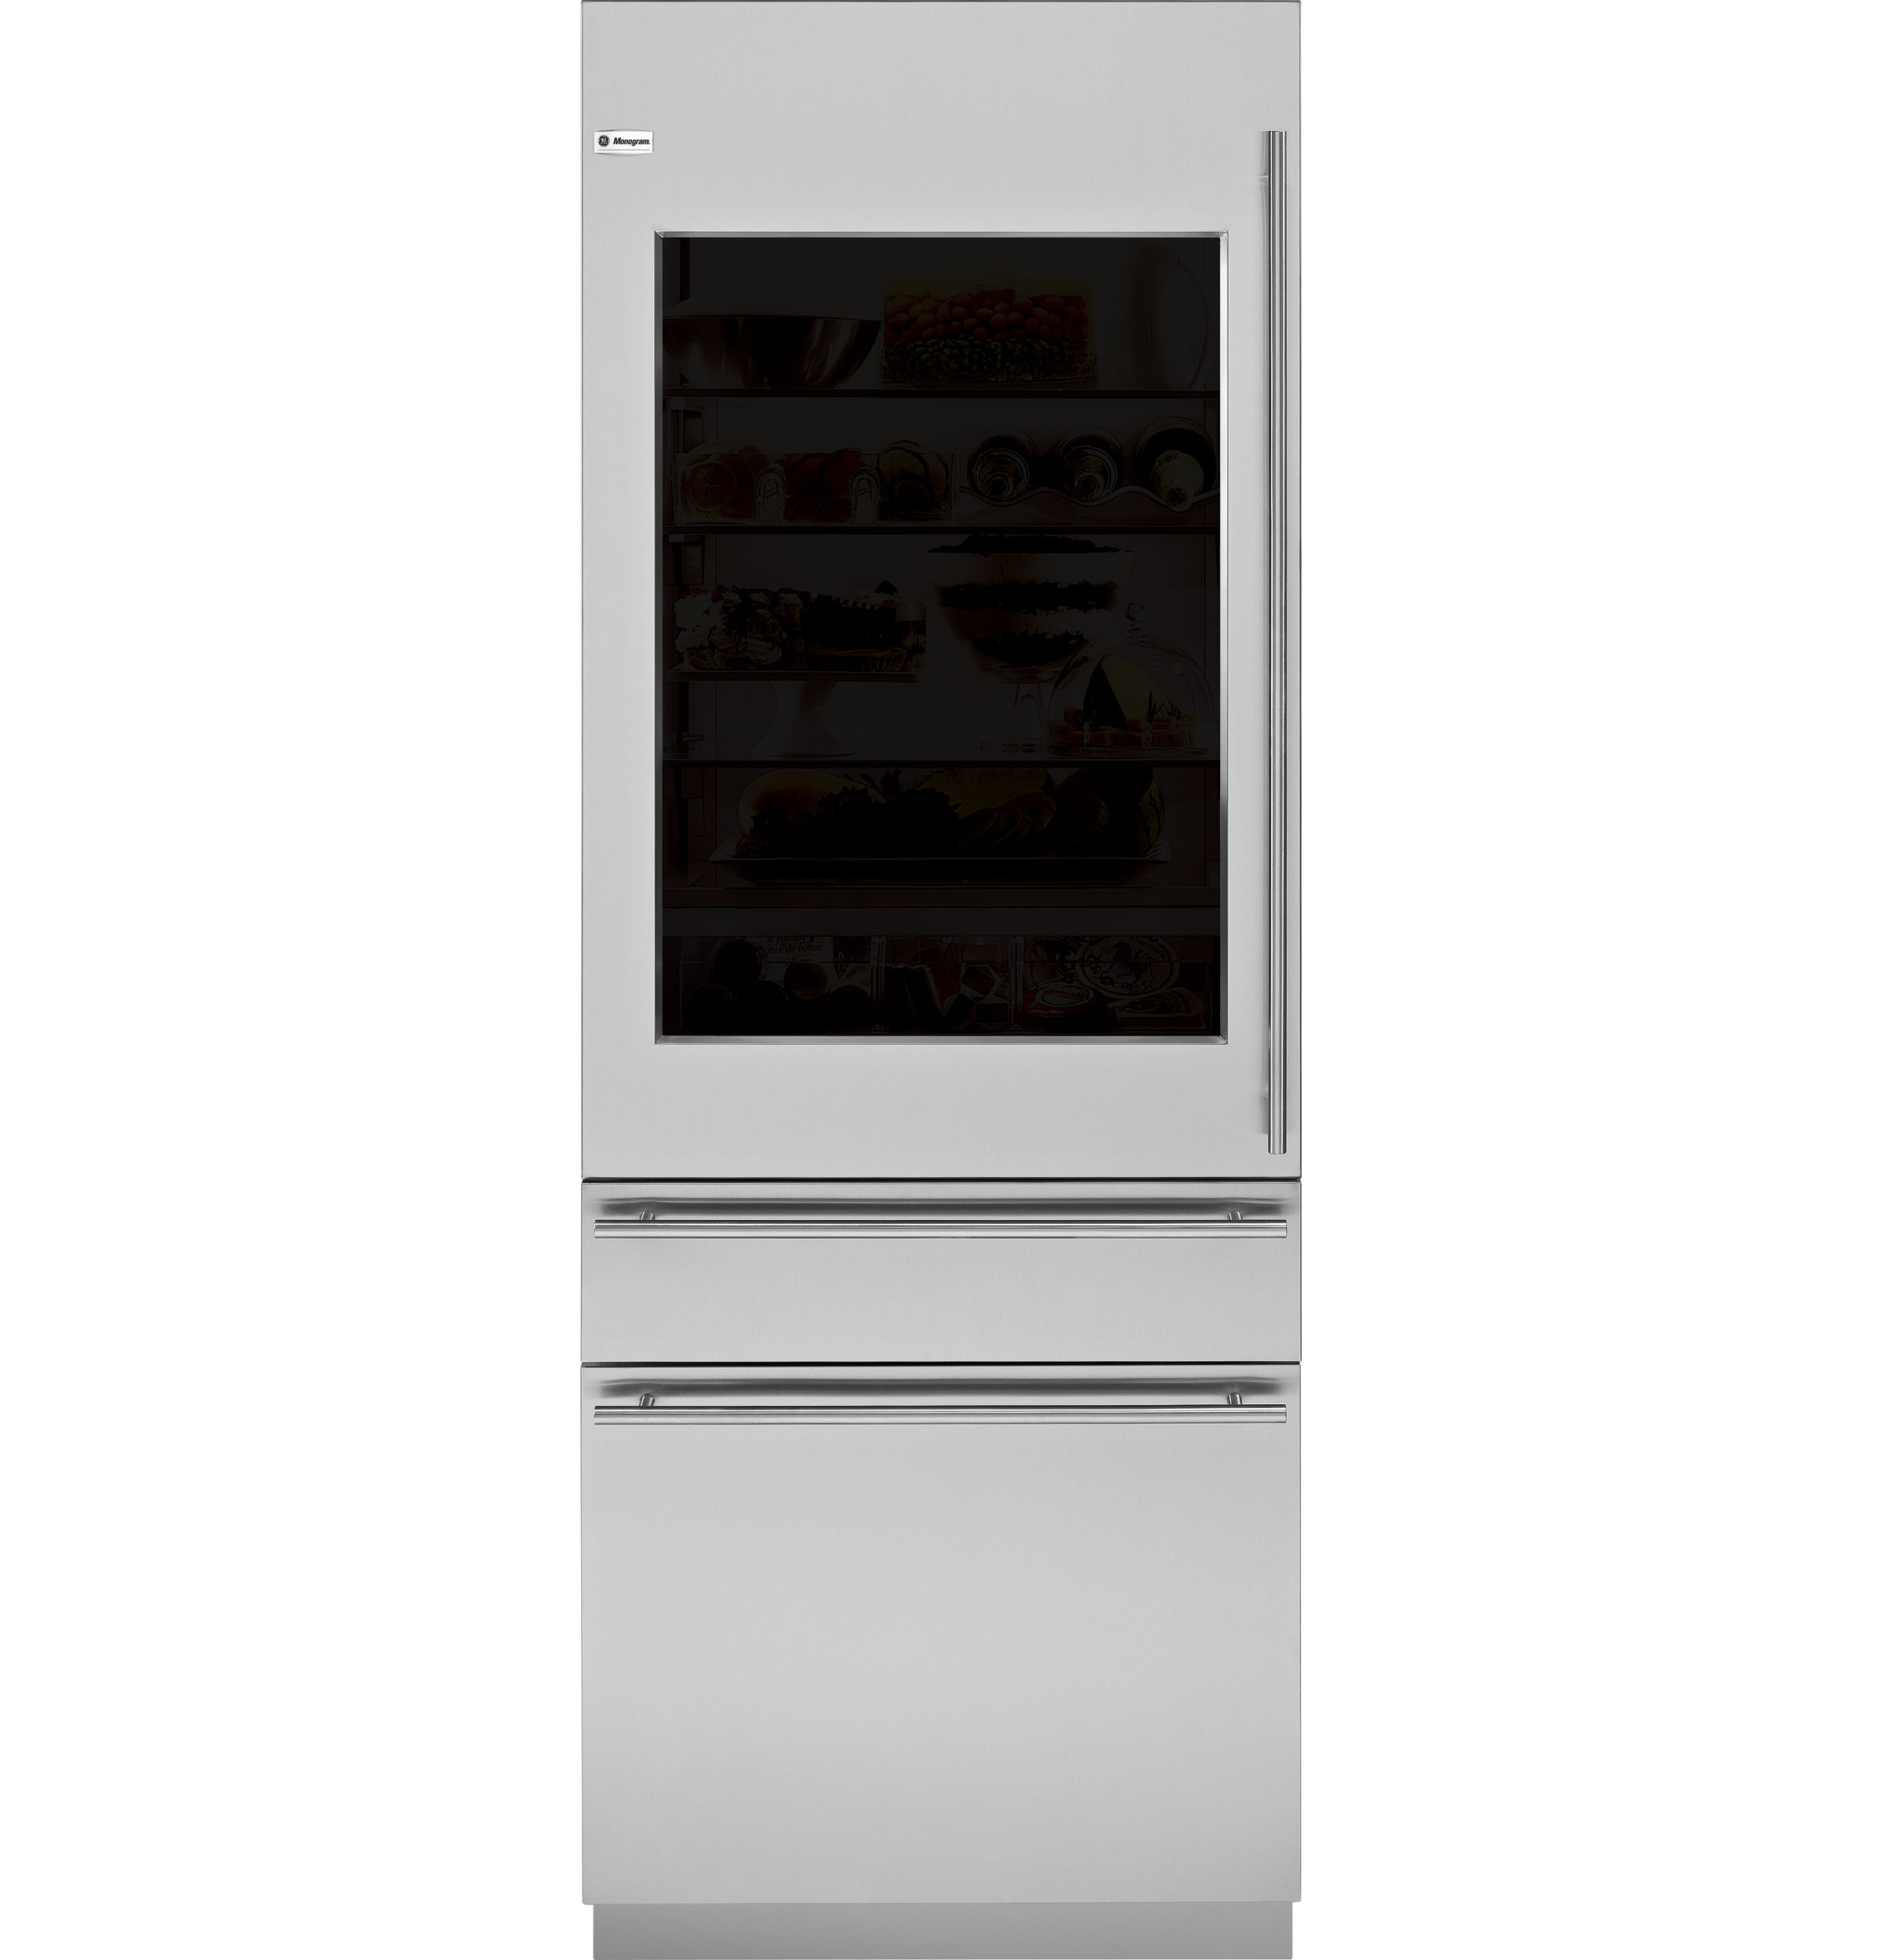 popular parts accessories - Refridgerator Glass Door